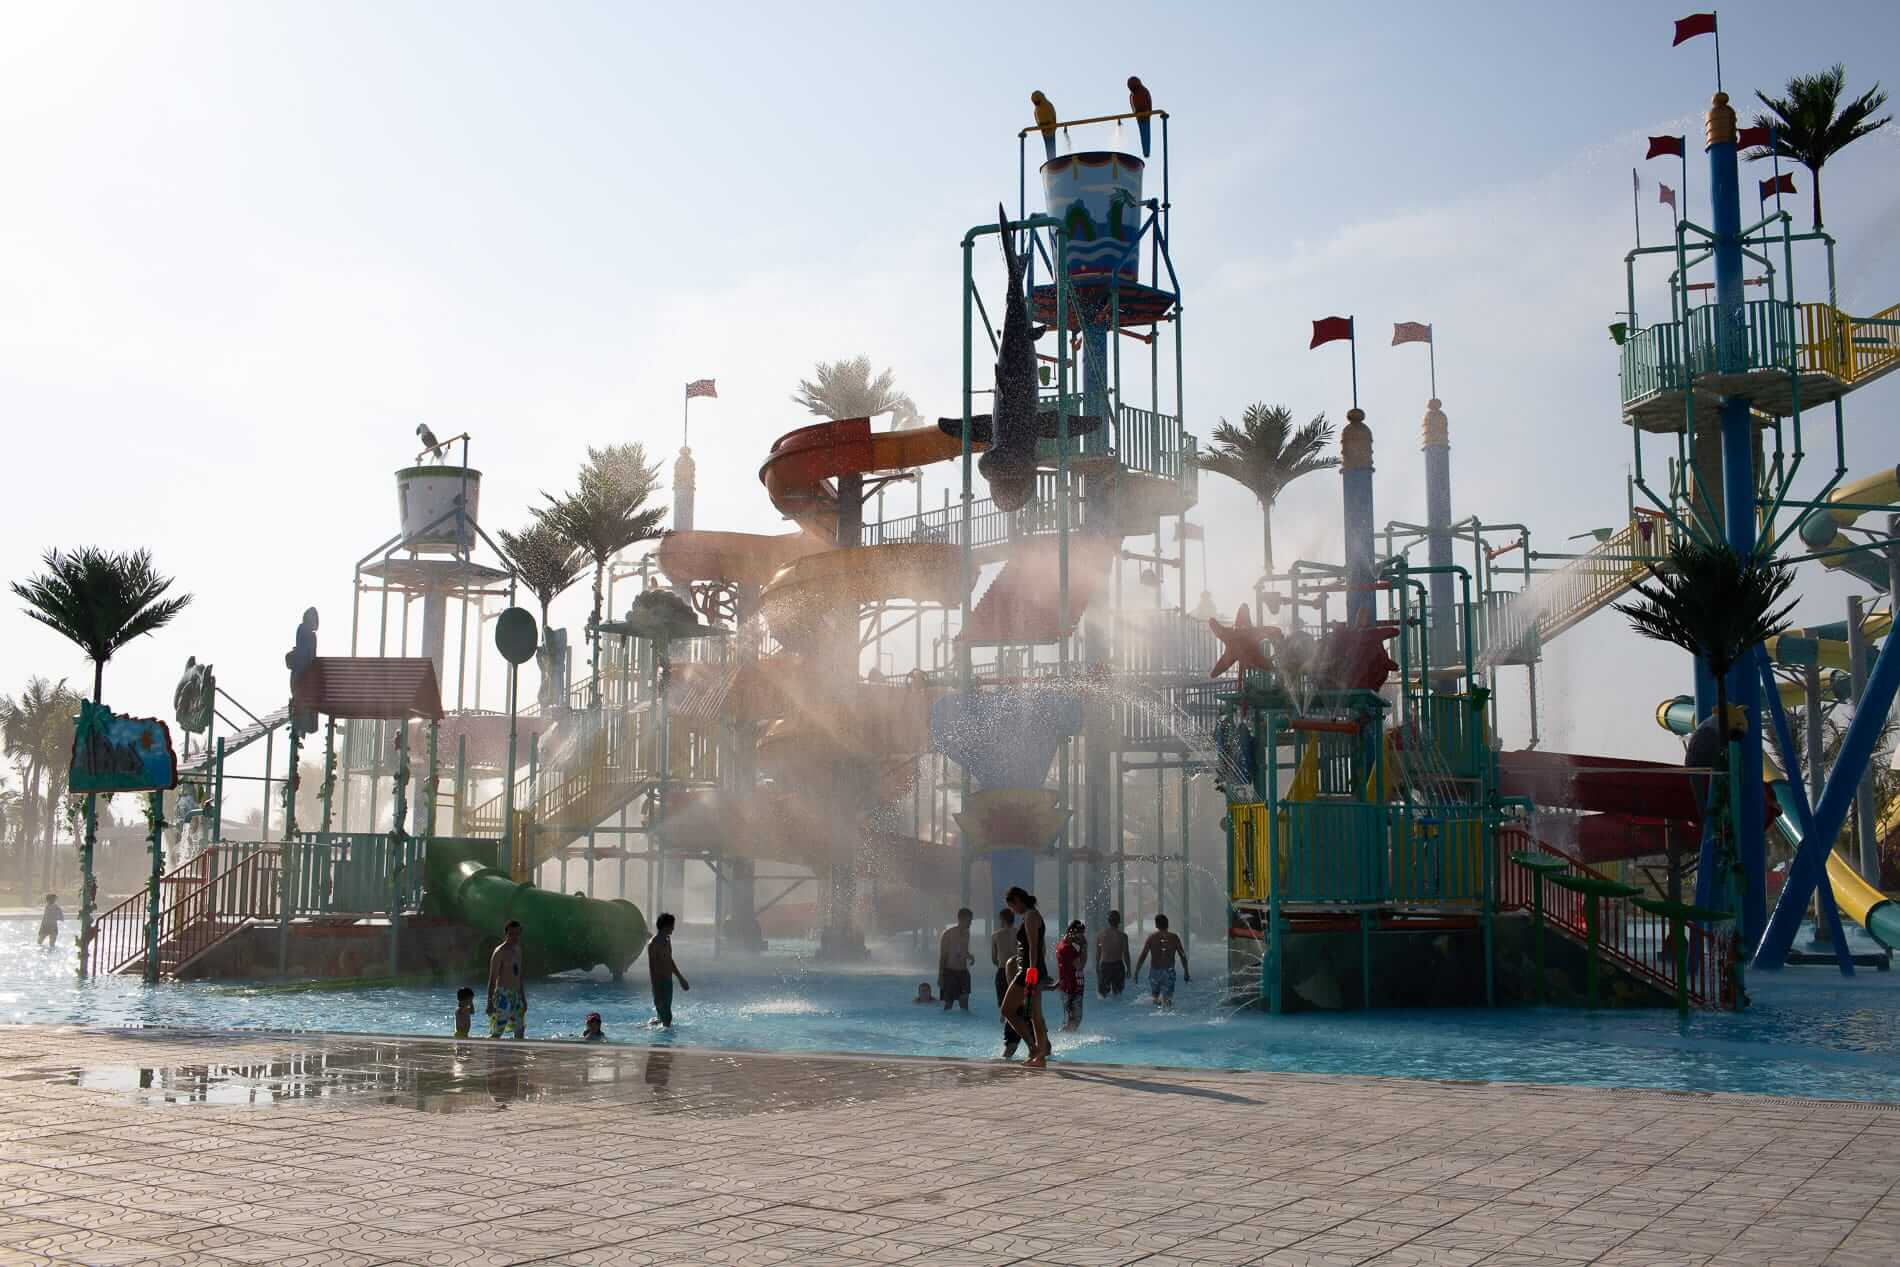 The waterpark slides and play area.